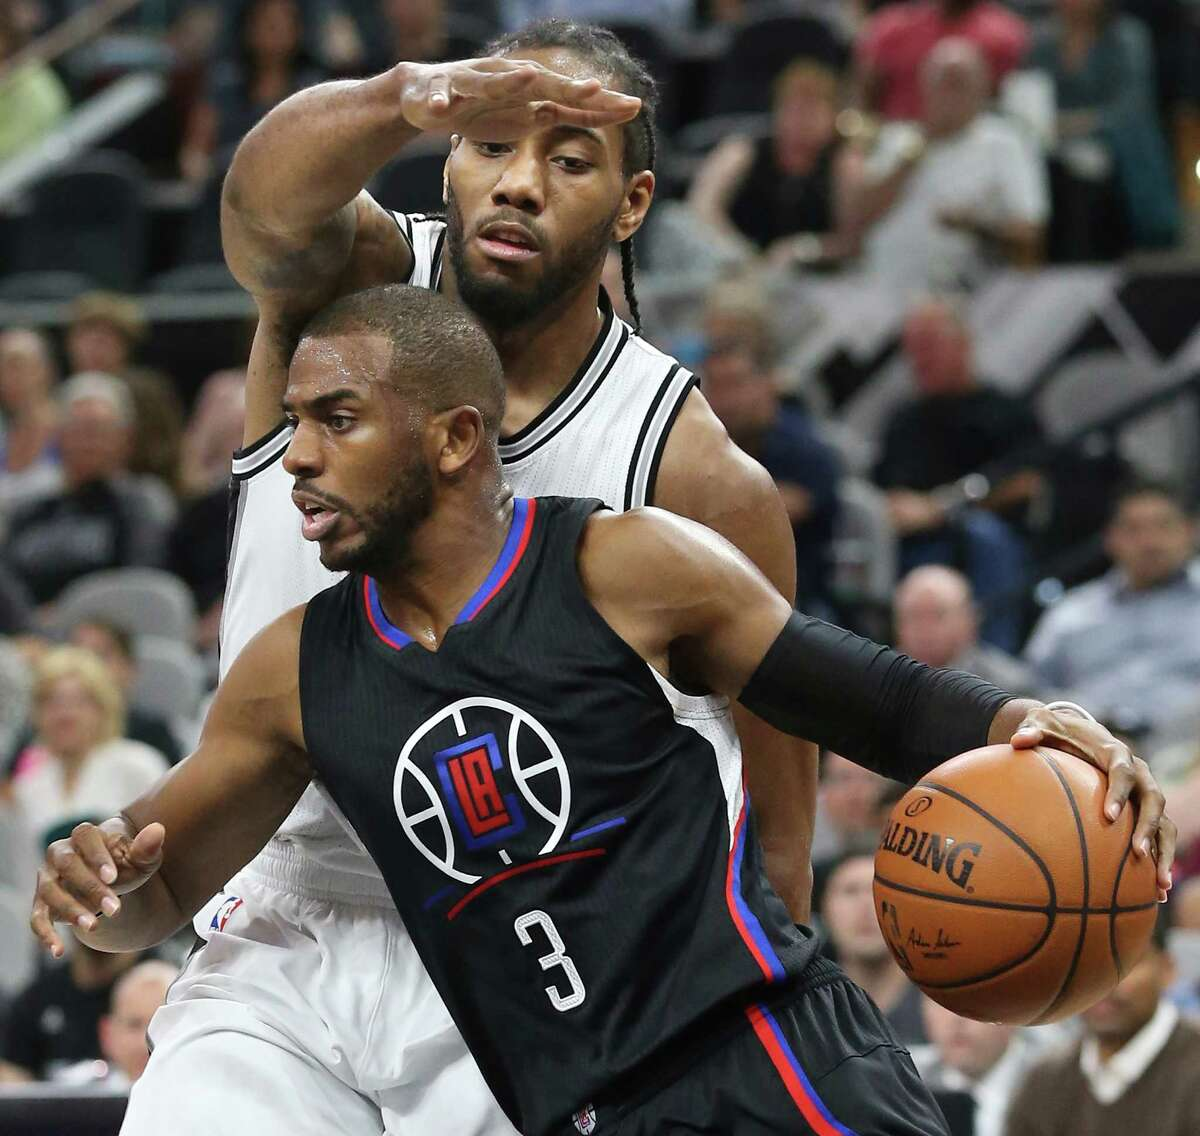 Kawhi Leonard attempts to keep a lid on the offensive efforts of Chris Paul as the Spurs host the Clippers at the AT&T Center on March 15, 2016.